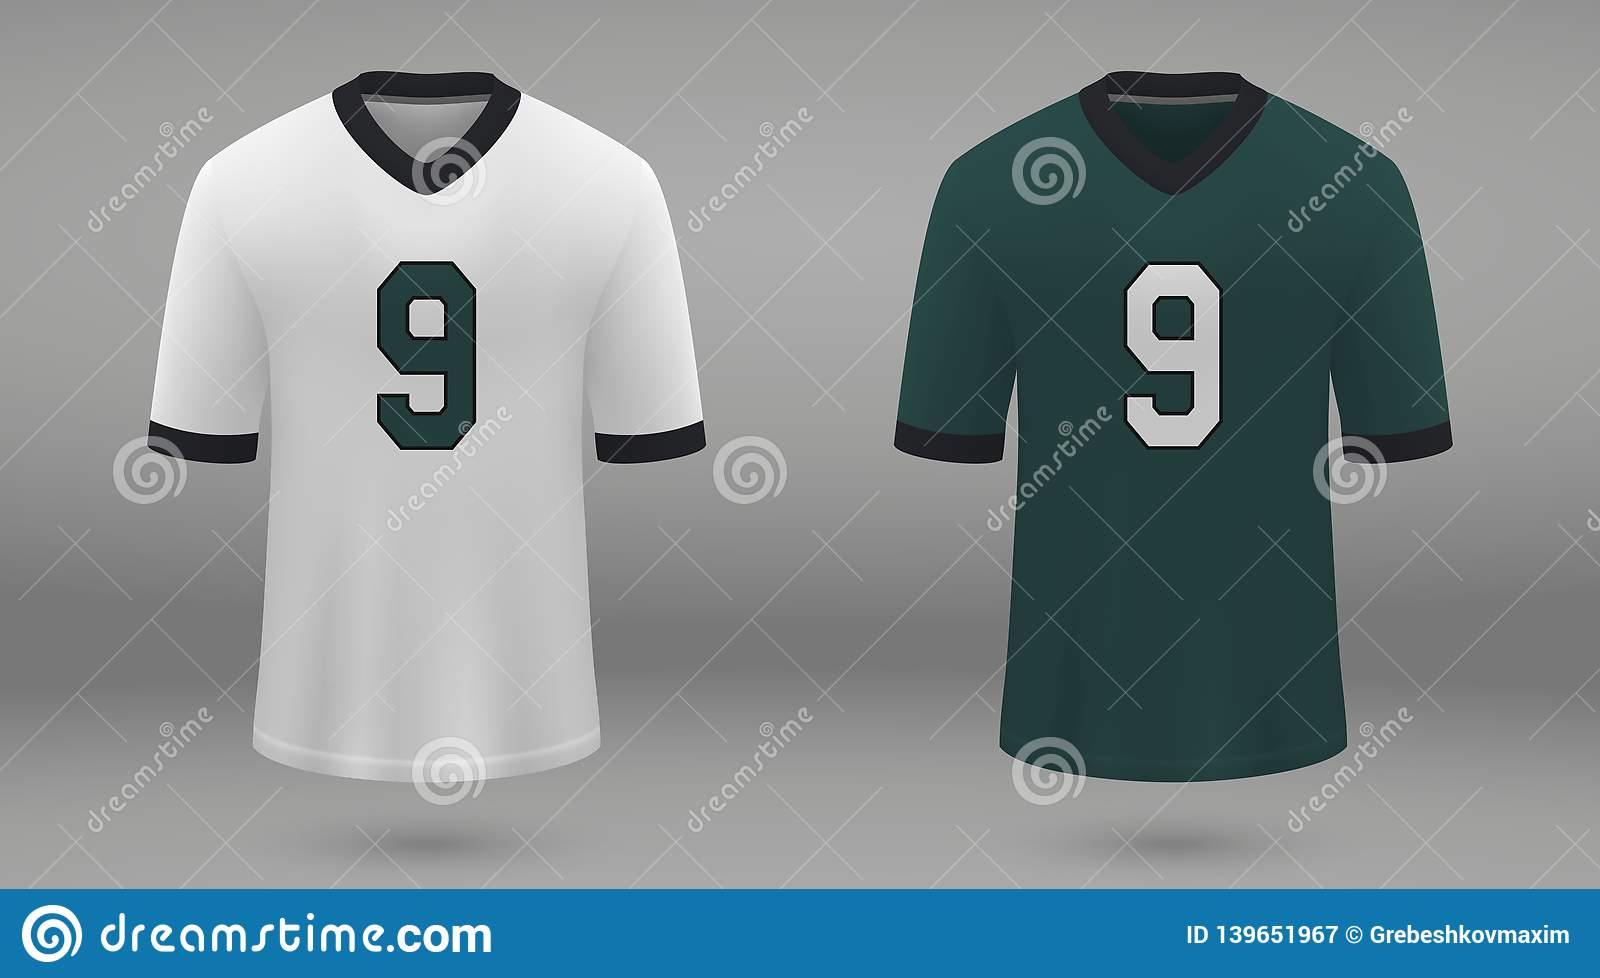 8bf80289f9f Realistic american football jersey Philadelphia Eagles, shirt template for  kit. Vector illustration. More similar stock illustrations